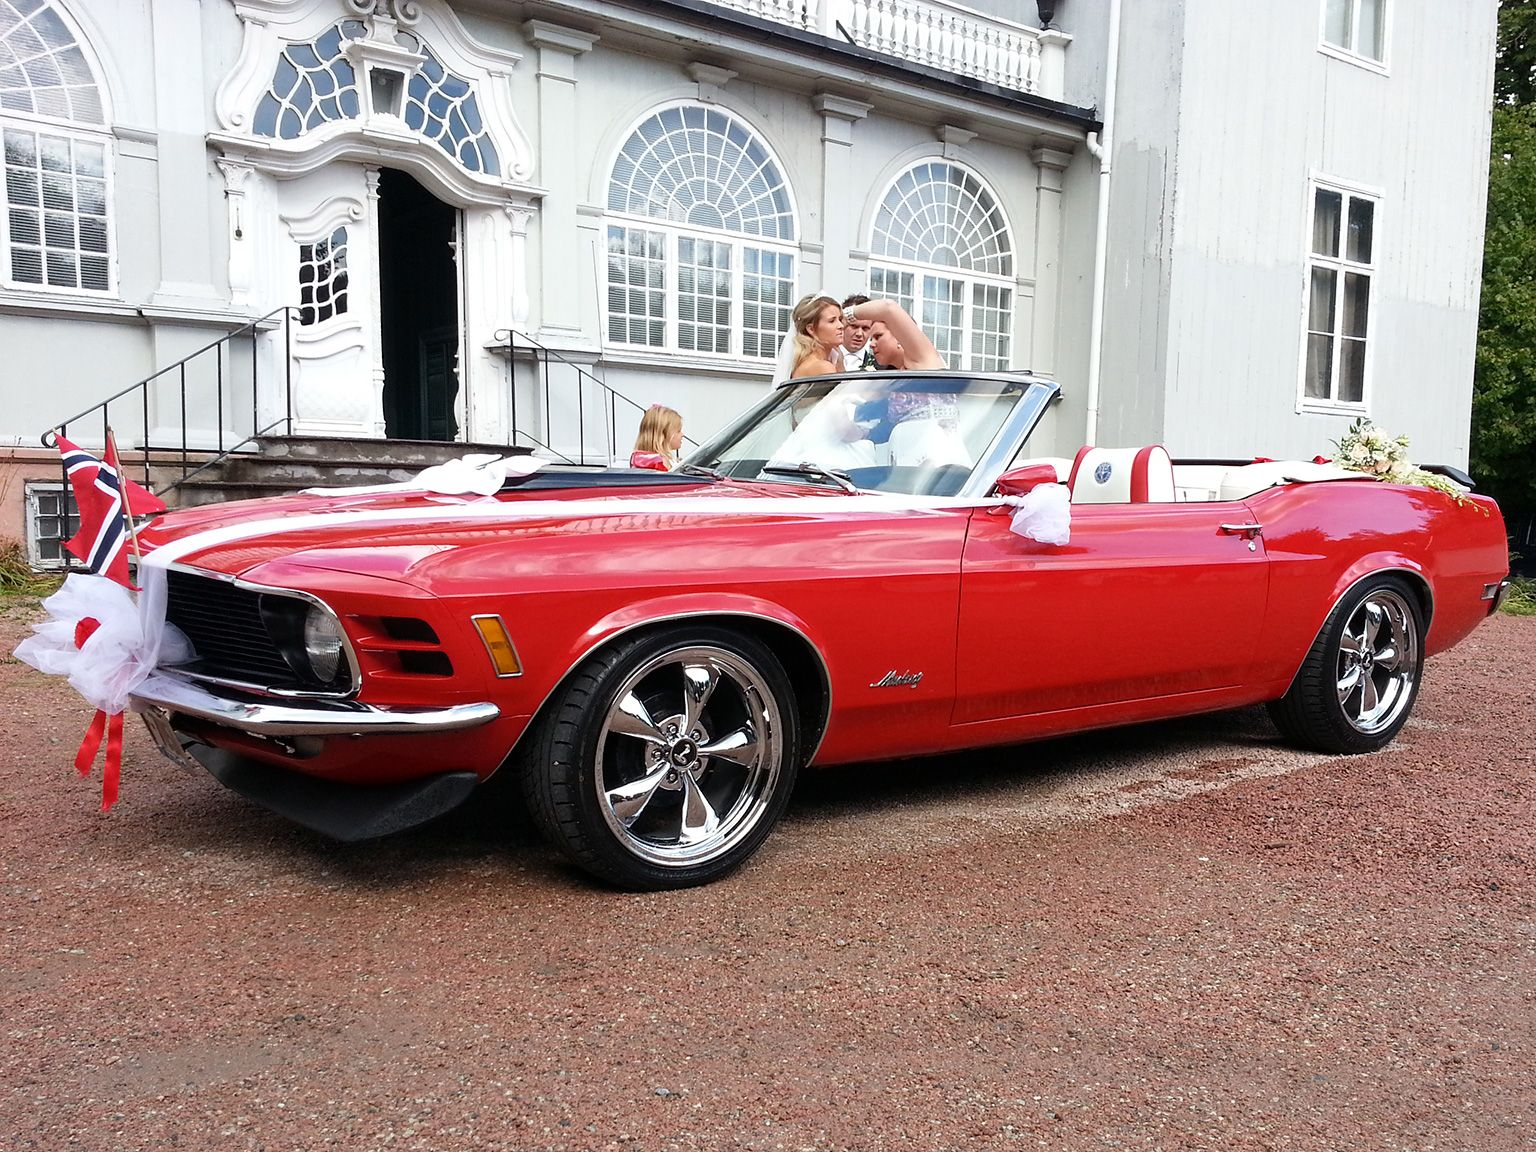 Ford Mustang Convertible Til Leie I Accrington Ford Mustang Convertible Mustang Convertible Ford Mustang